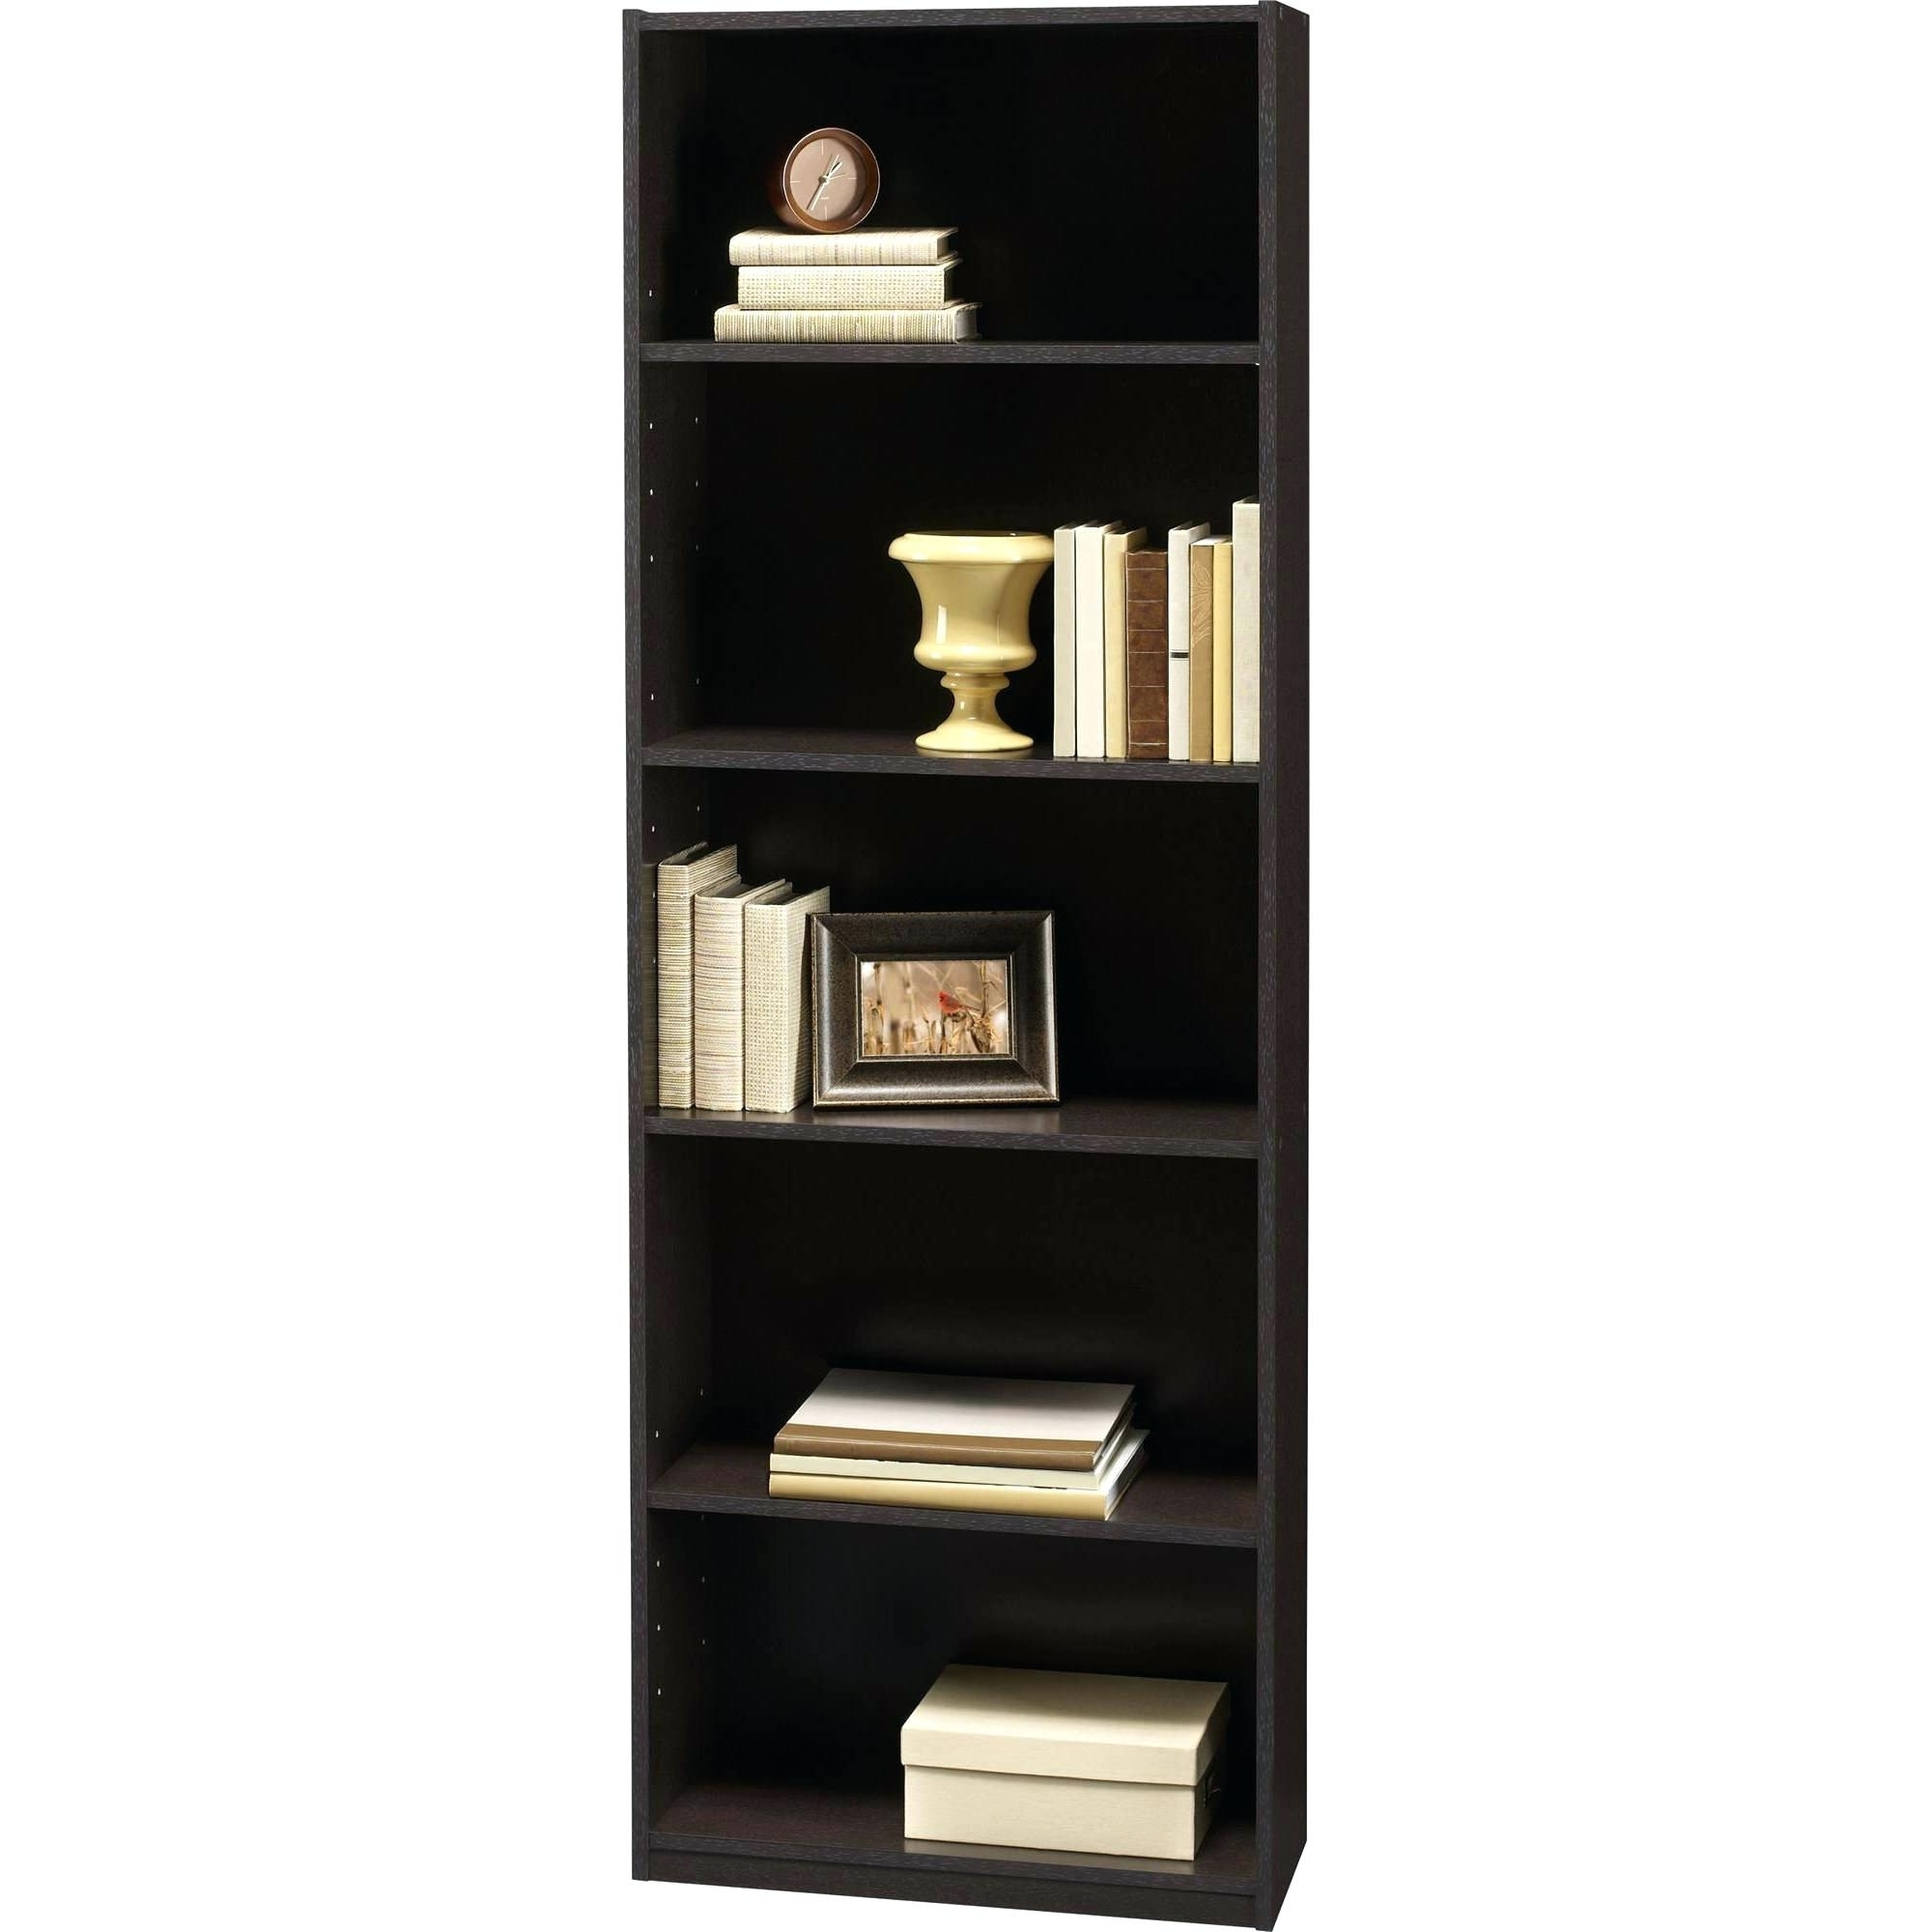 Most Up To Date Small Walmart Bookcases In Walmart Bookcases S Walmart Bookcases Canada Walmart Bookcases (View 7 of 15)